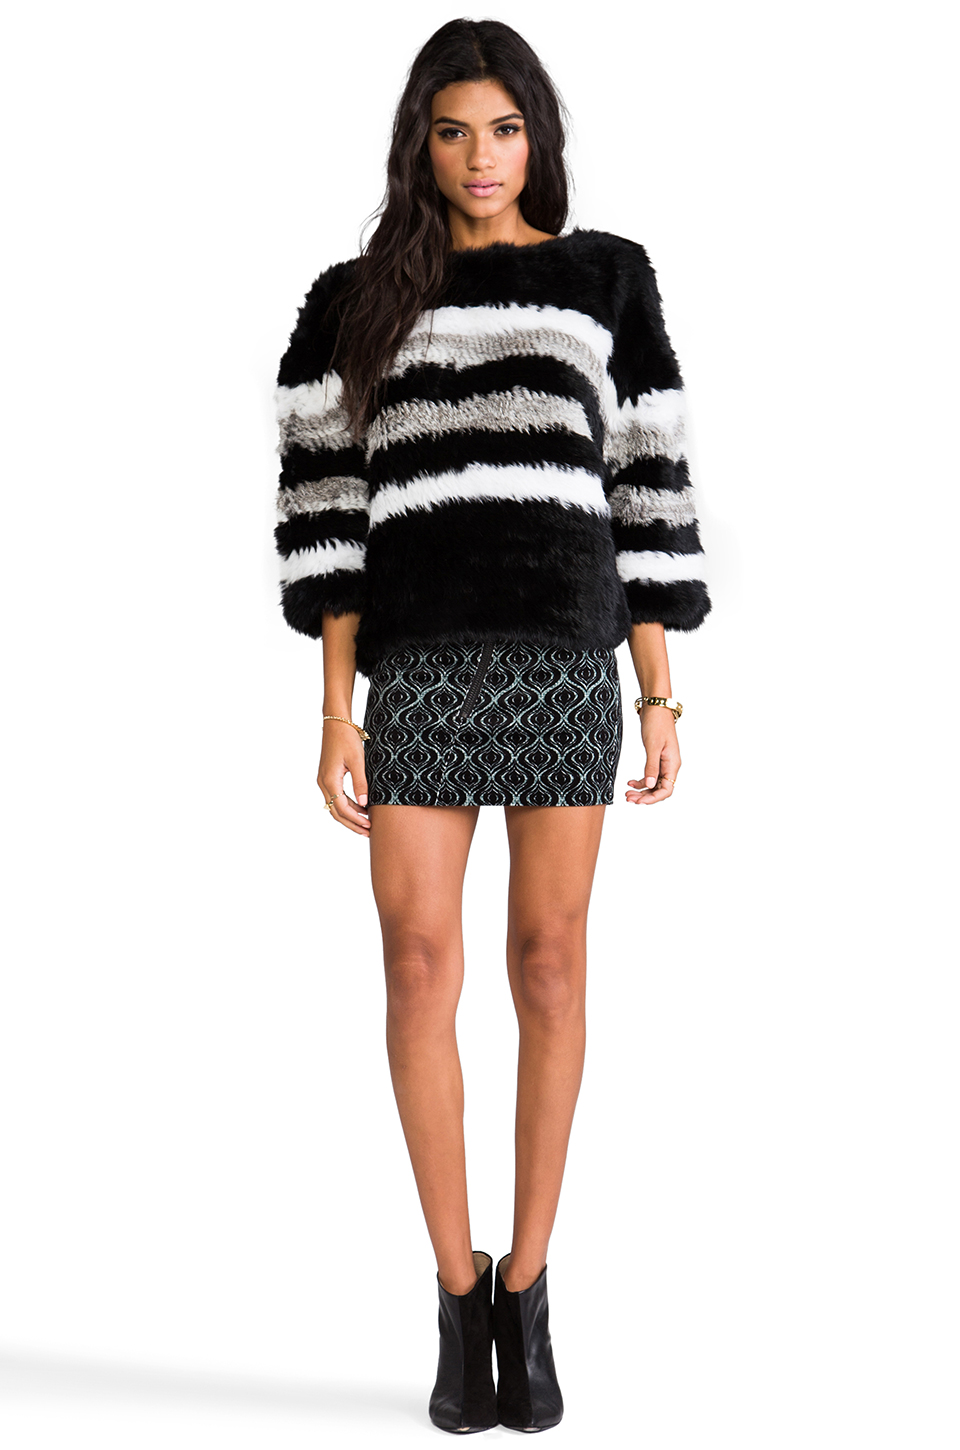 April, May Freeze Rabbit Pullover in Black